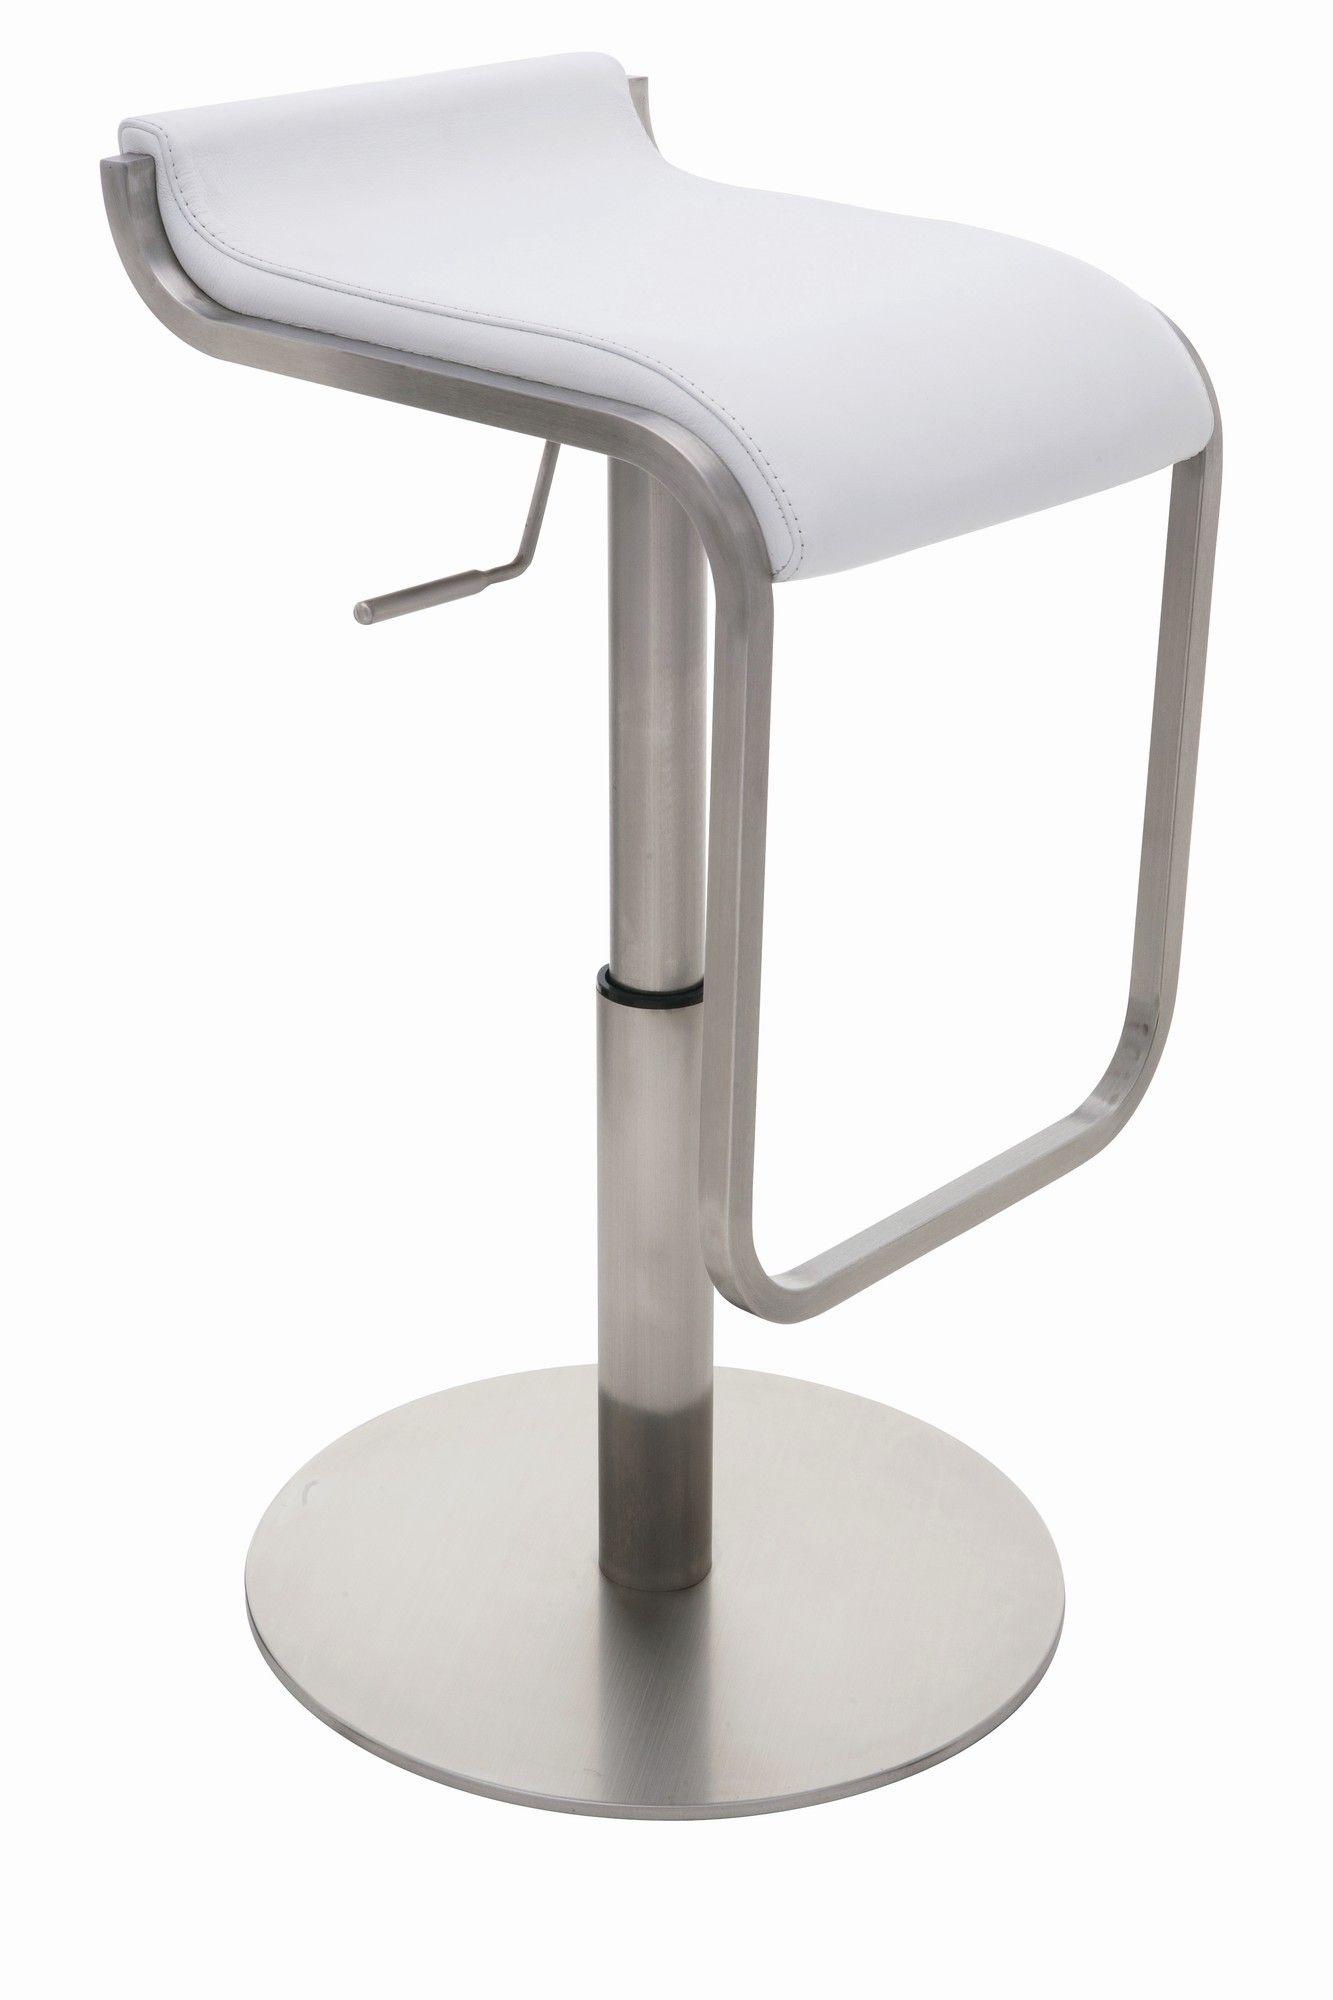 Taburete Con Ruedas Carrefour Adora Adjustable Height Bar Stool